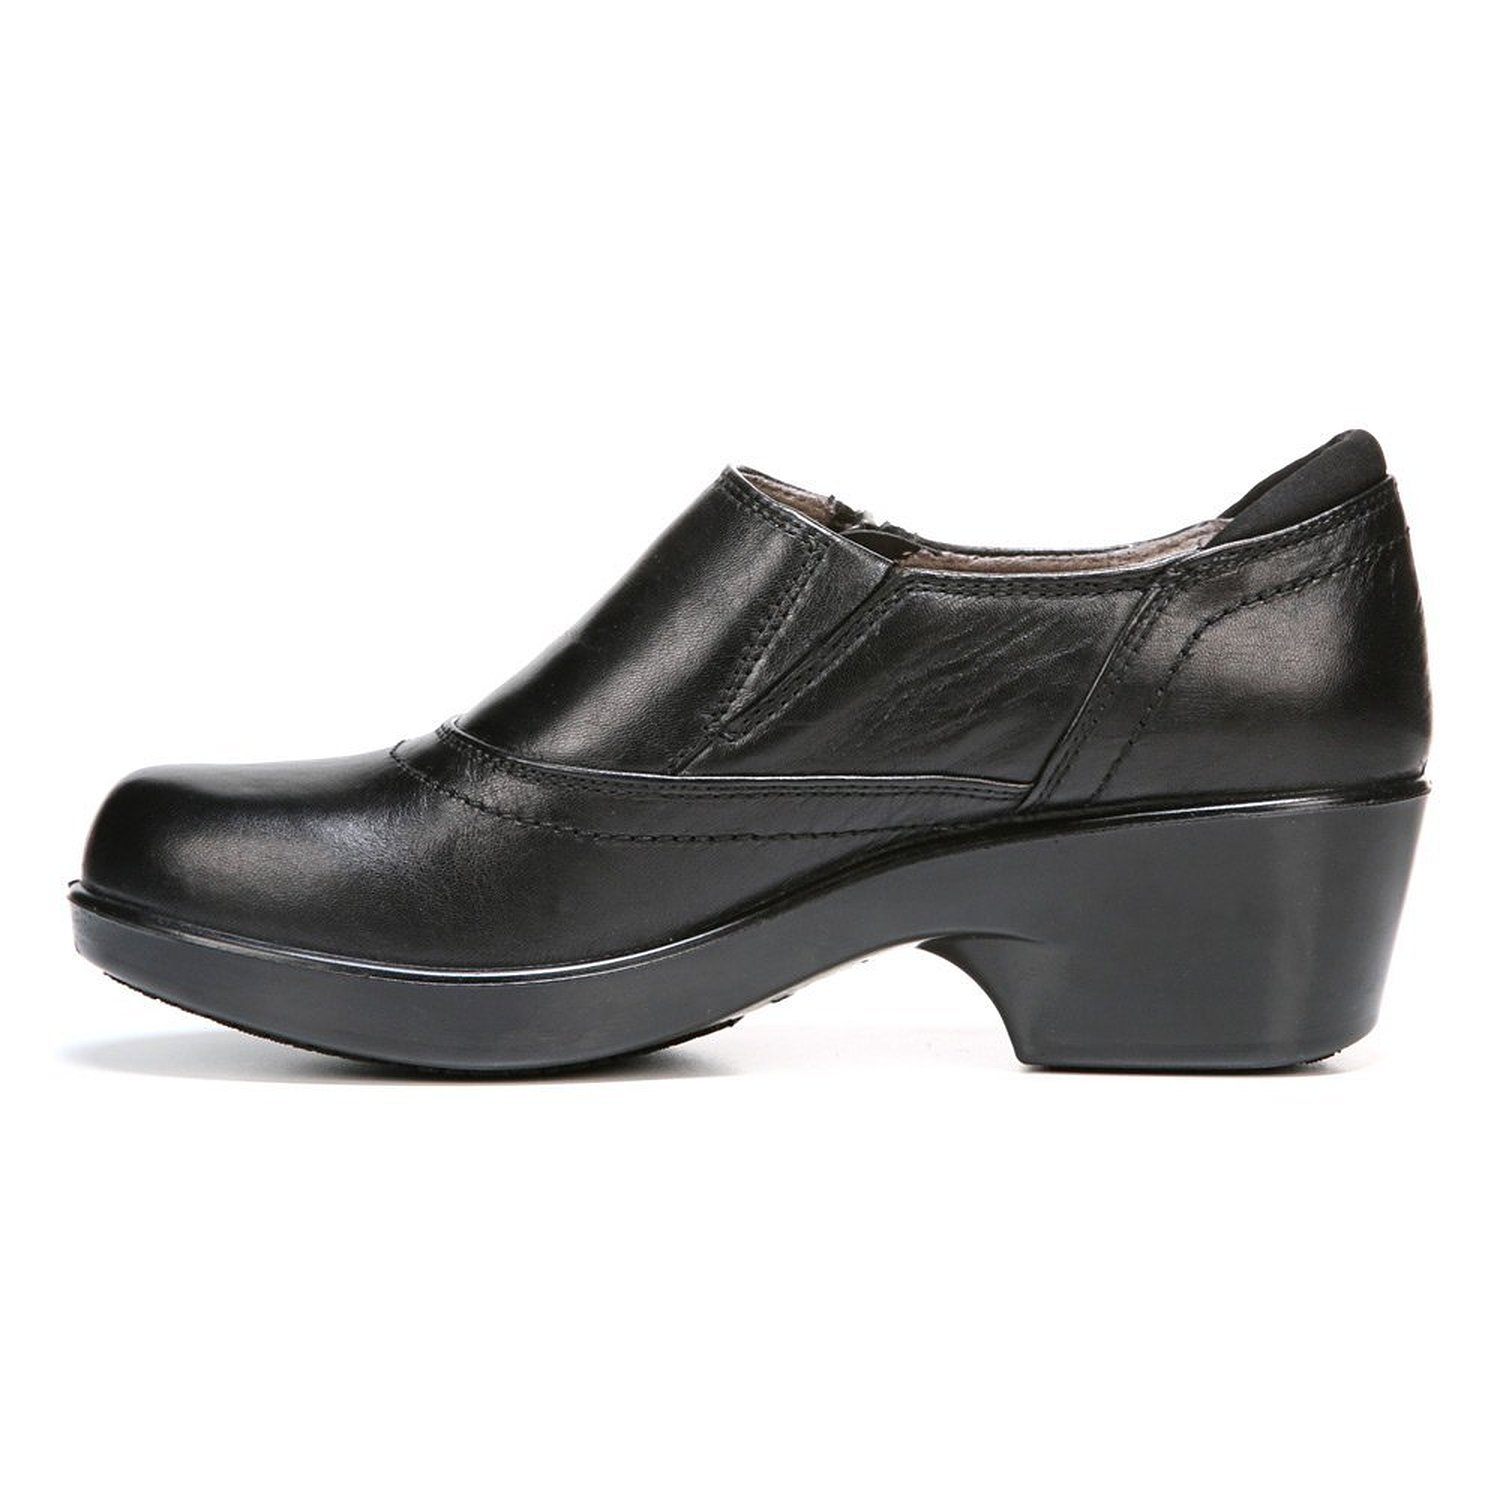 Naturalizer Women's Florence Black Leather Clog/Mulr